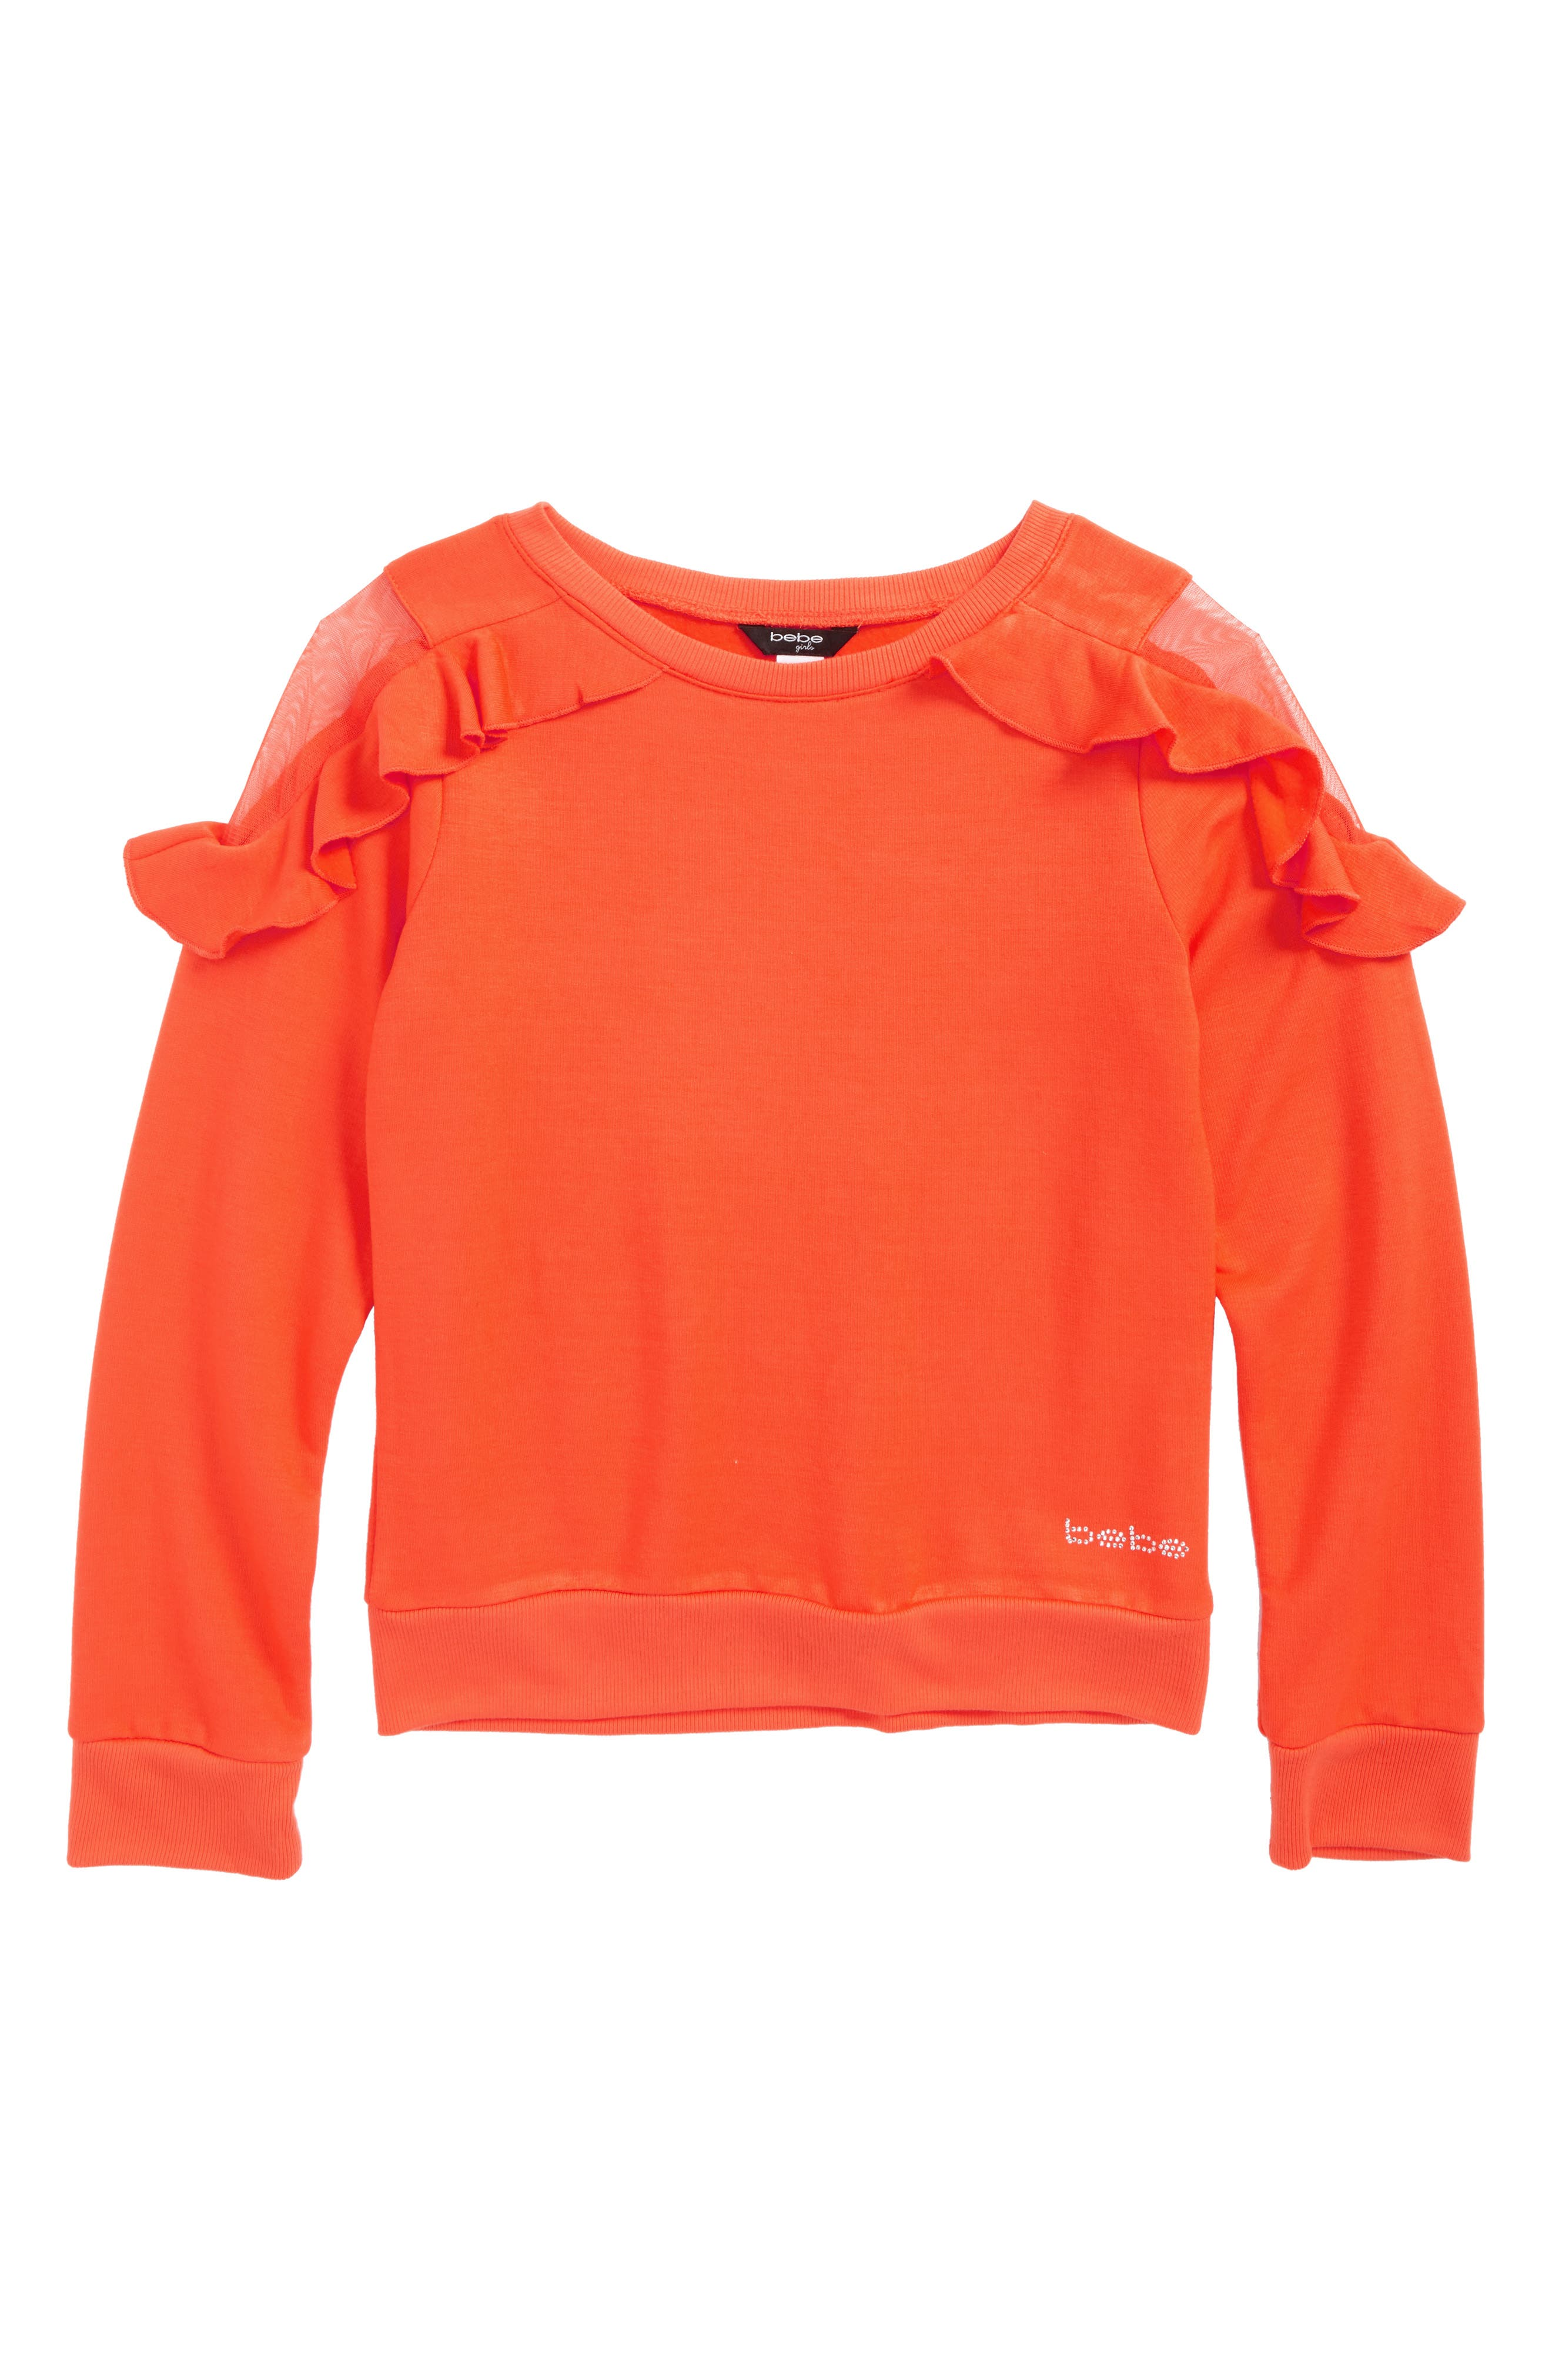 Mesh Shoulder Sweatshirt,                             Main thumbnail 1, color,